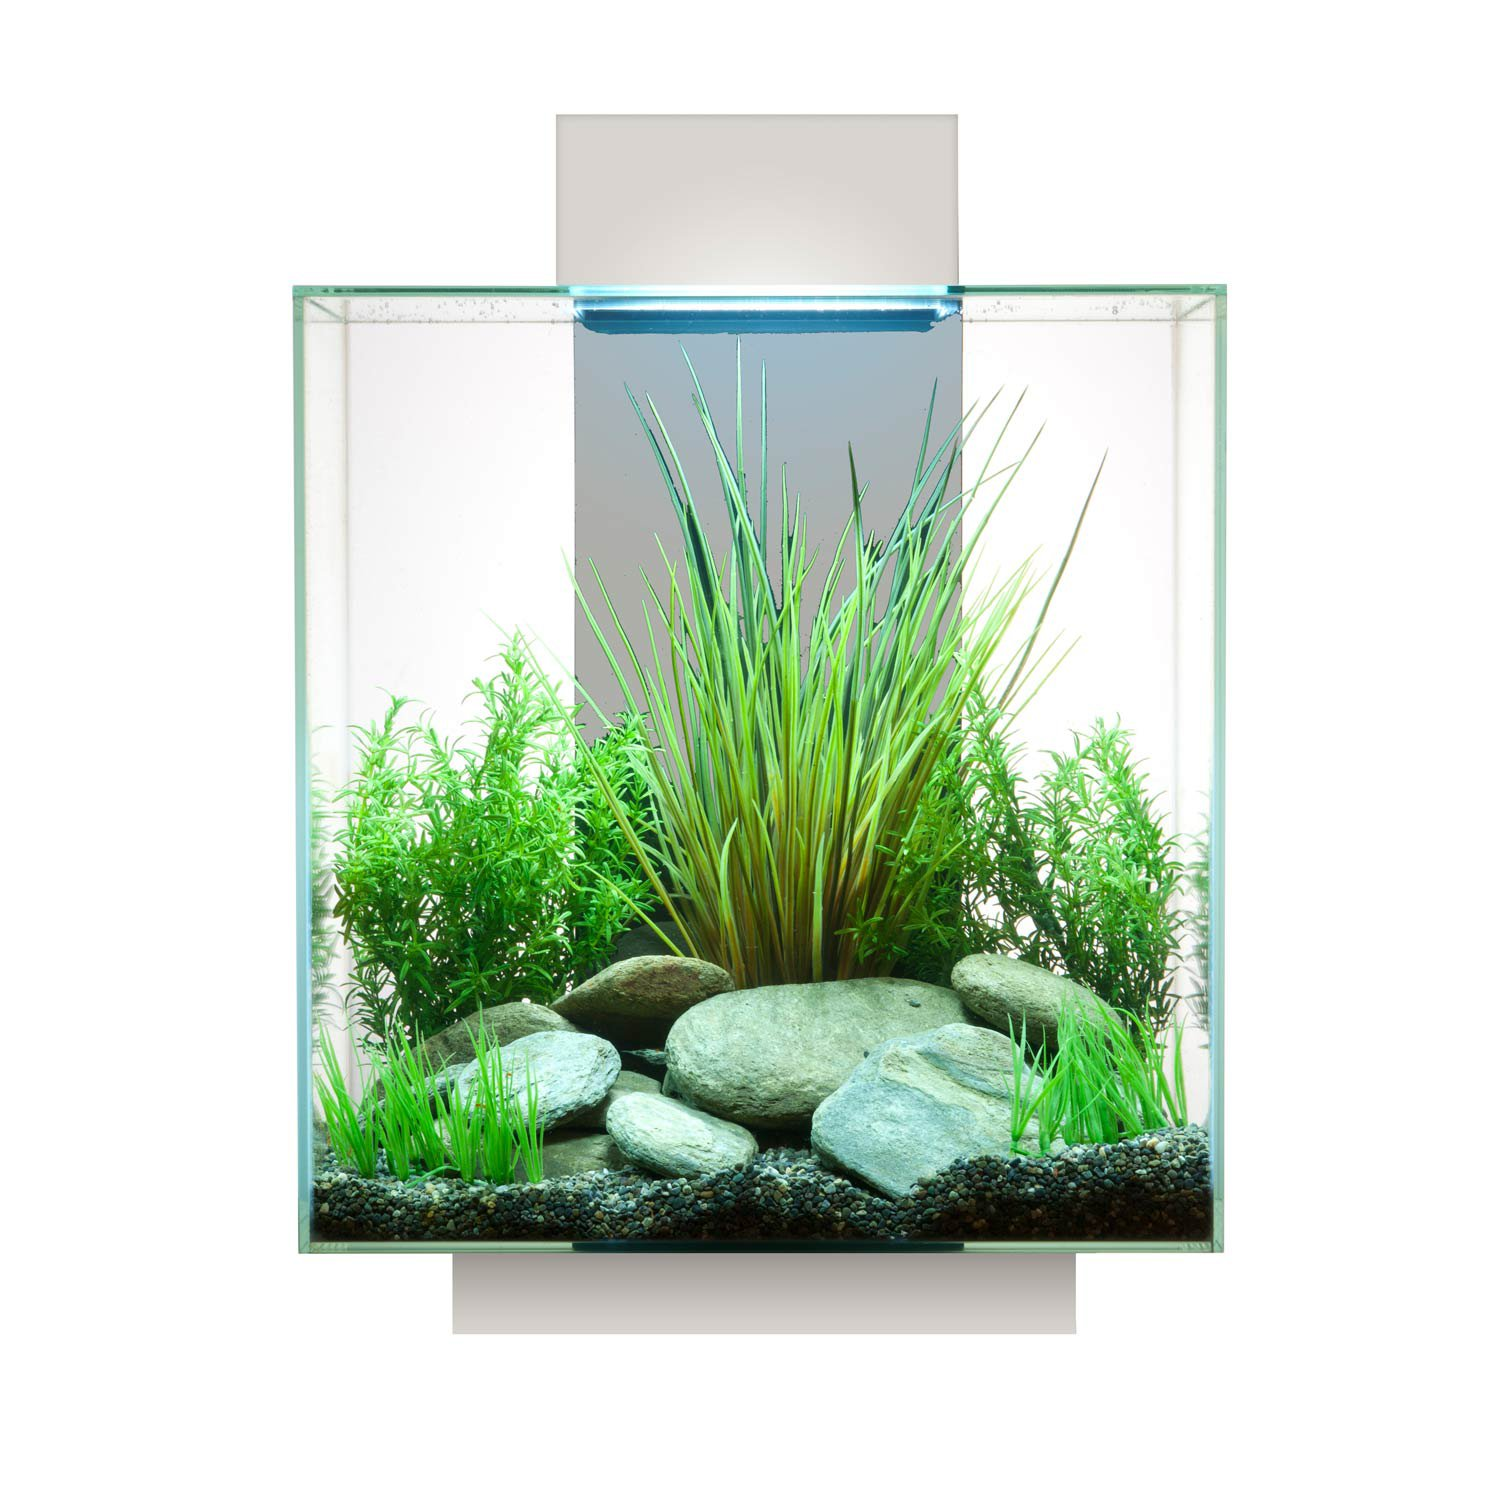 Fluval edge aquarium kit in white petco for Fluval fish tank